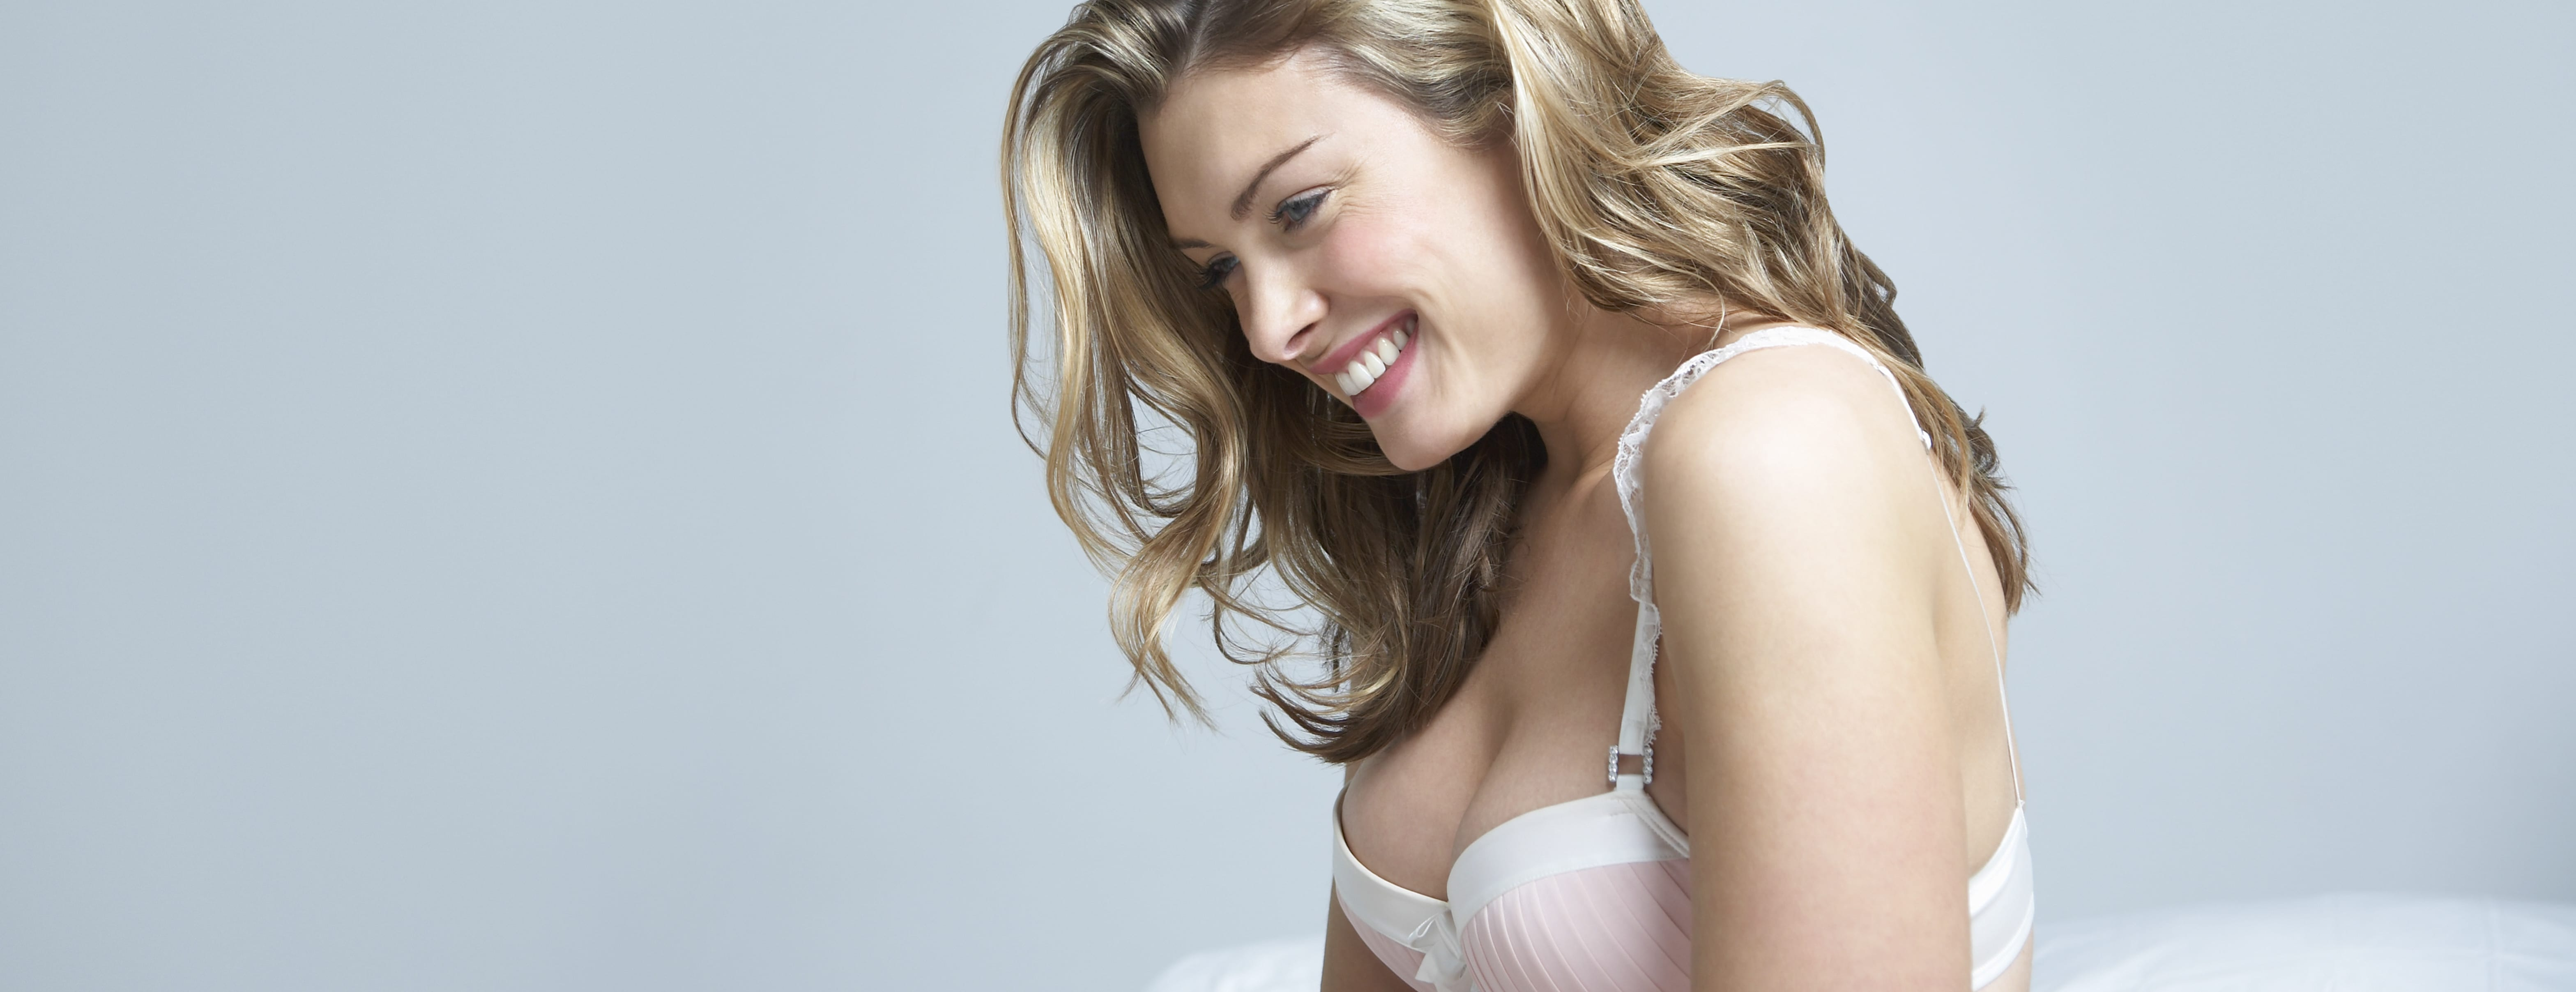 Happy thoughtful woman in bra sitting on bed after Breast Augmentation in Winnipeg, MB